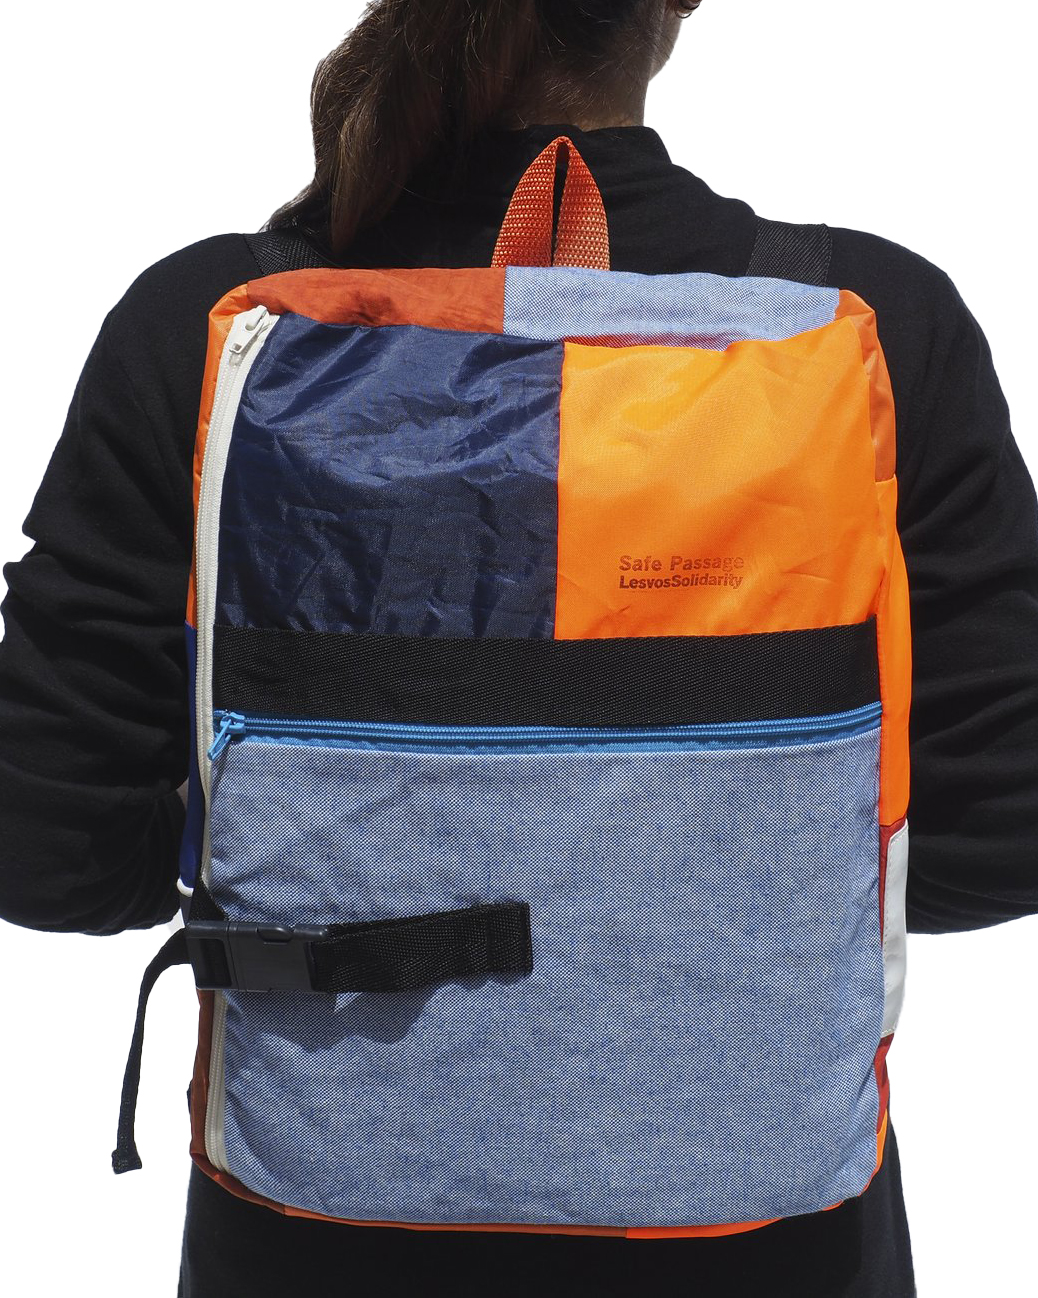 Safe Passage Backpack